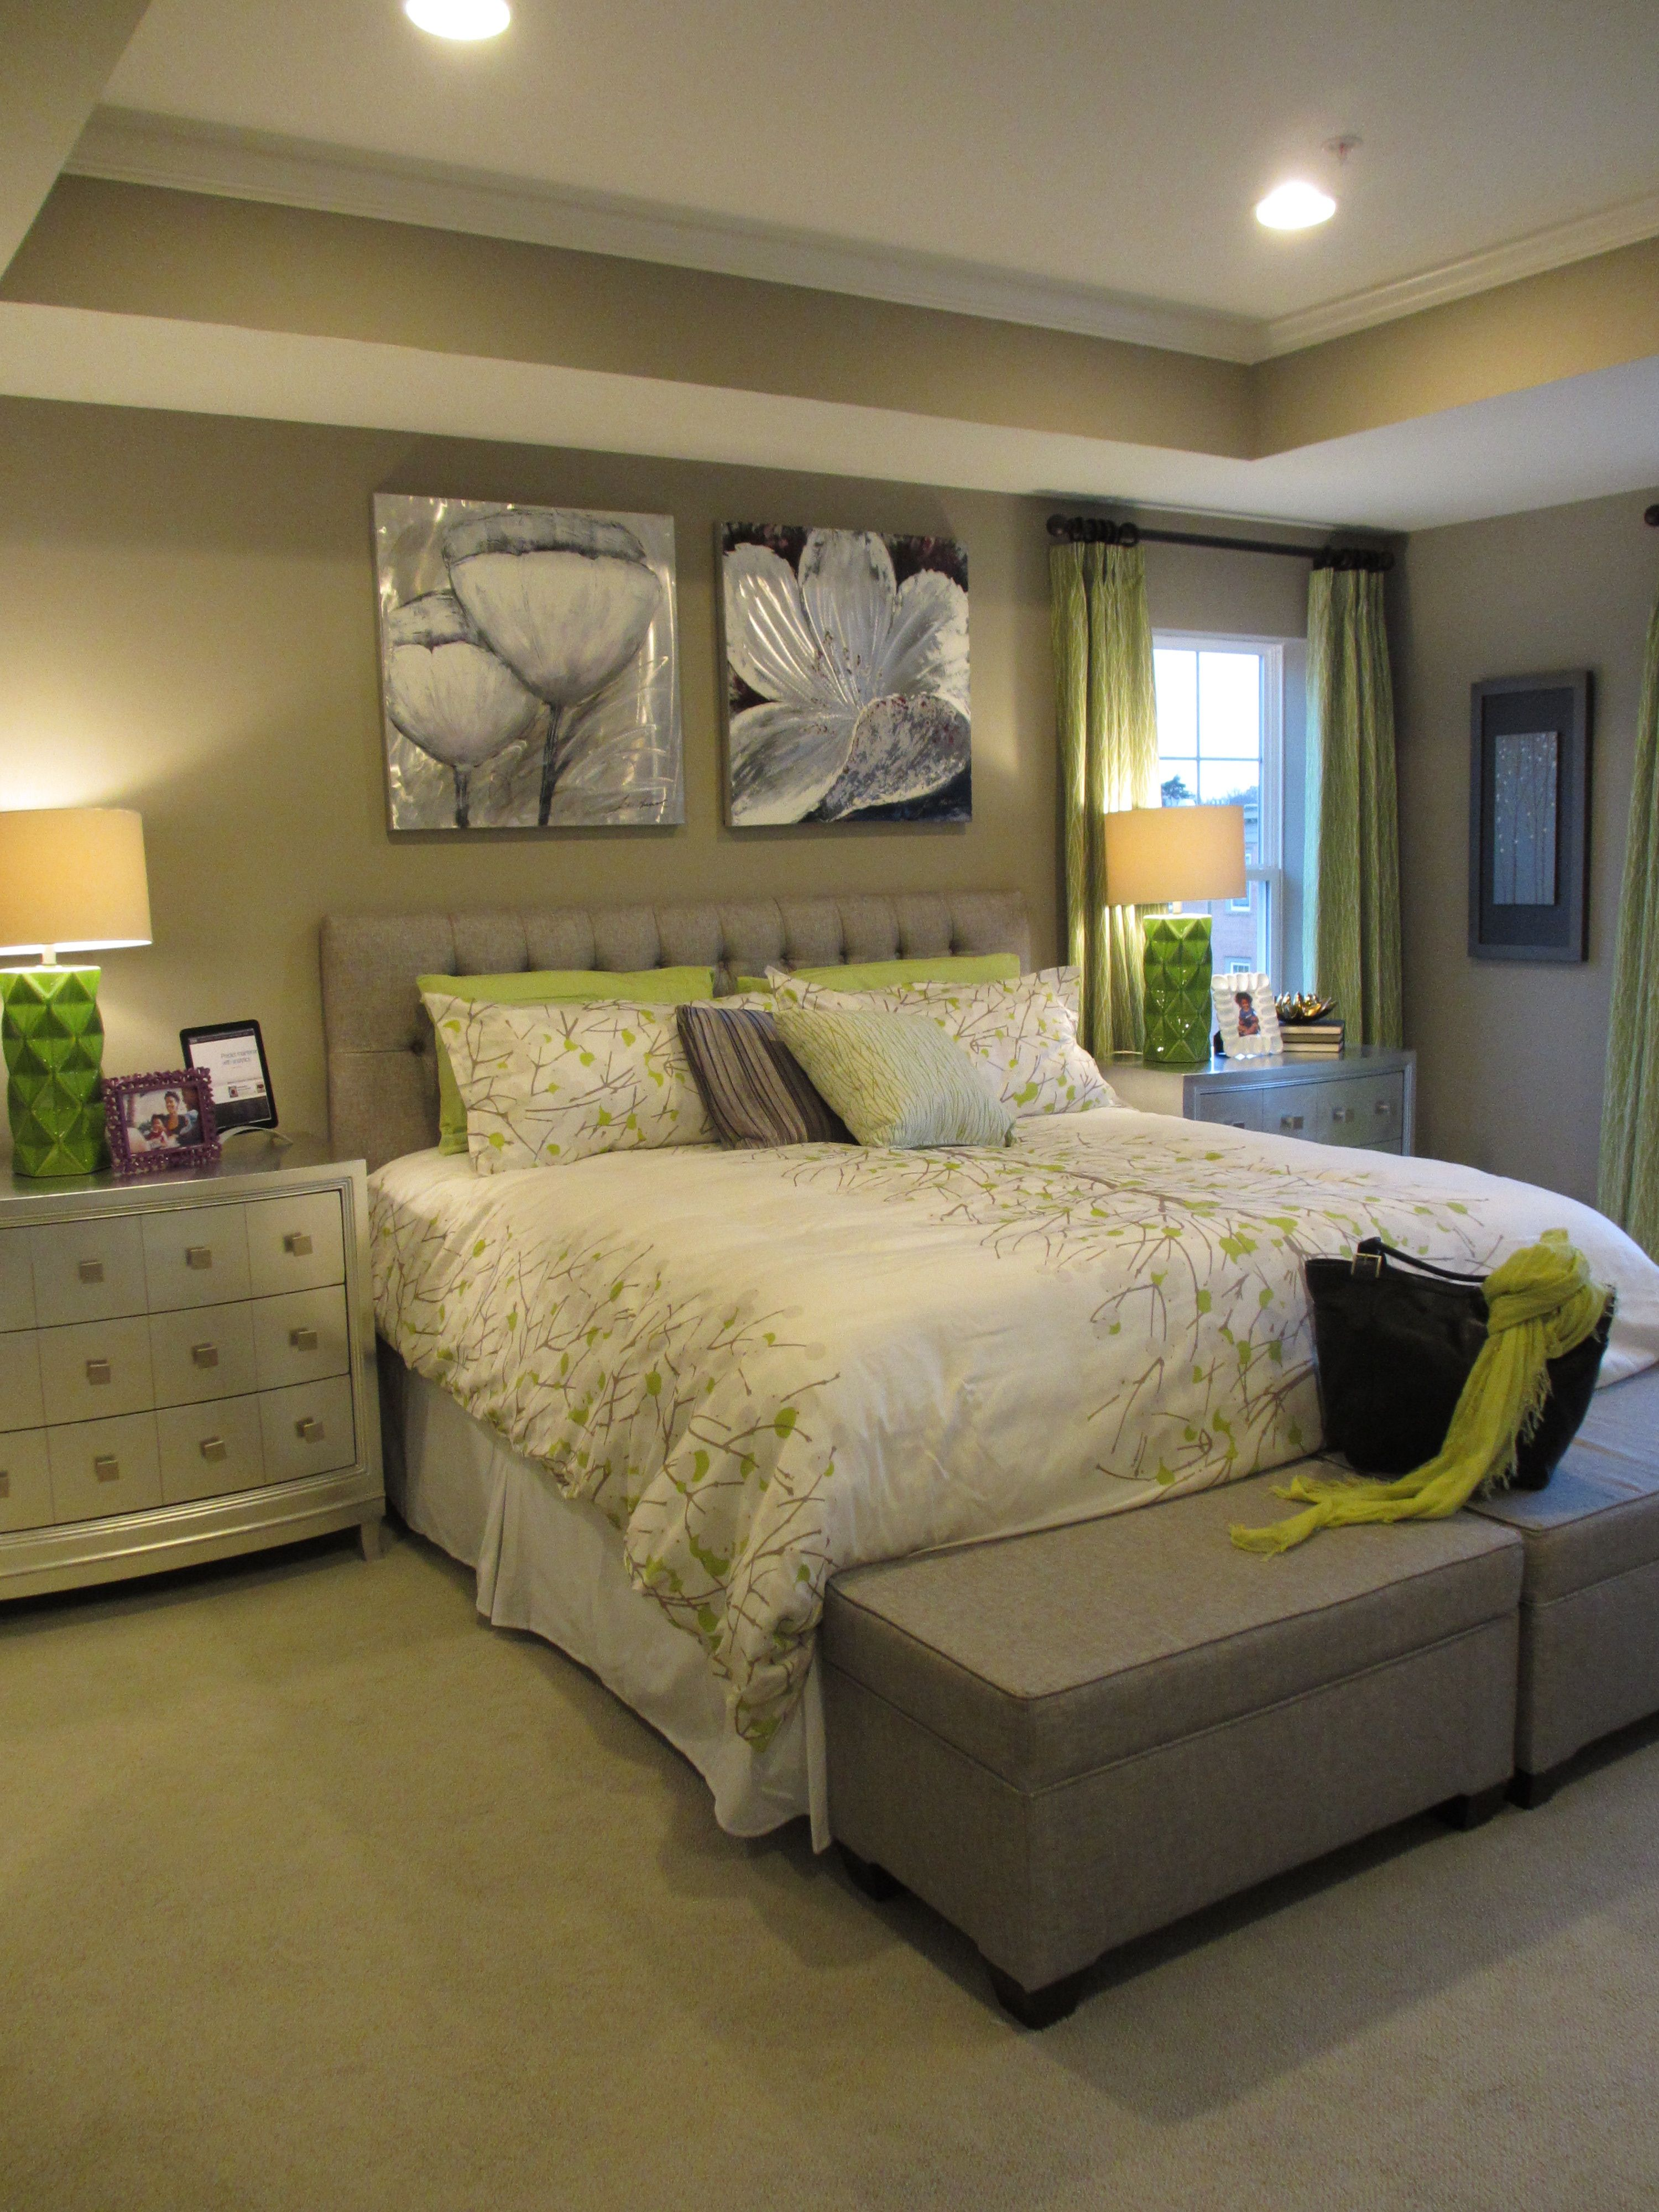 Summit hall upper unit green and grey designed by mina - Green and grey bedroom ...